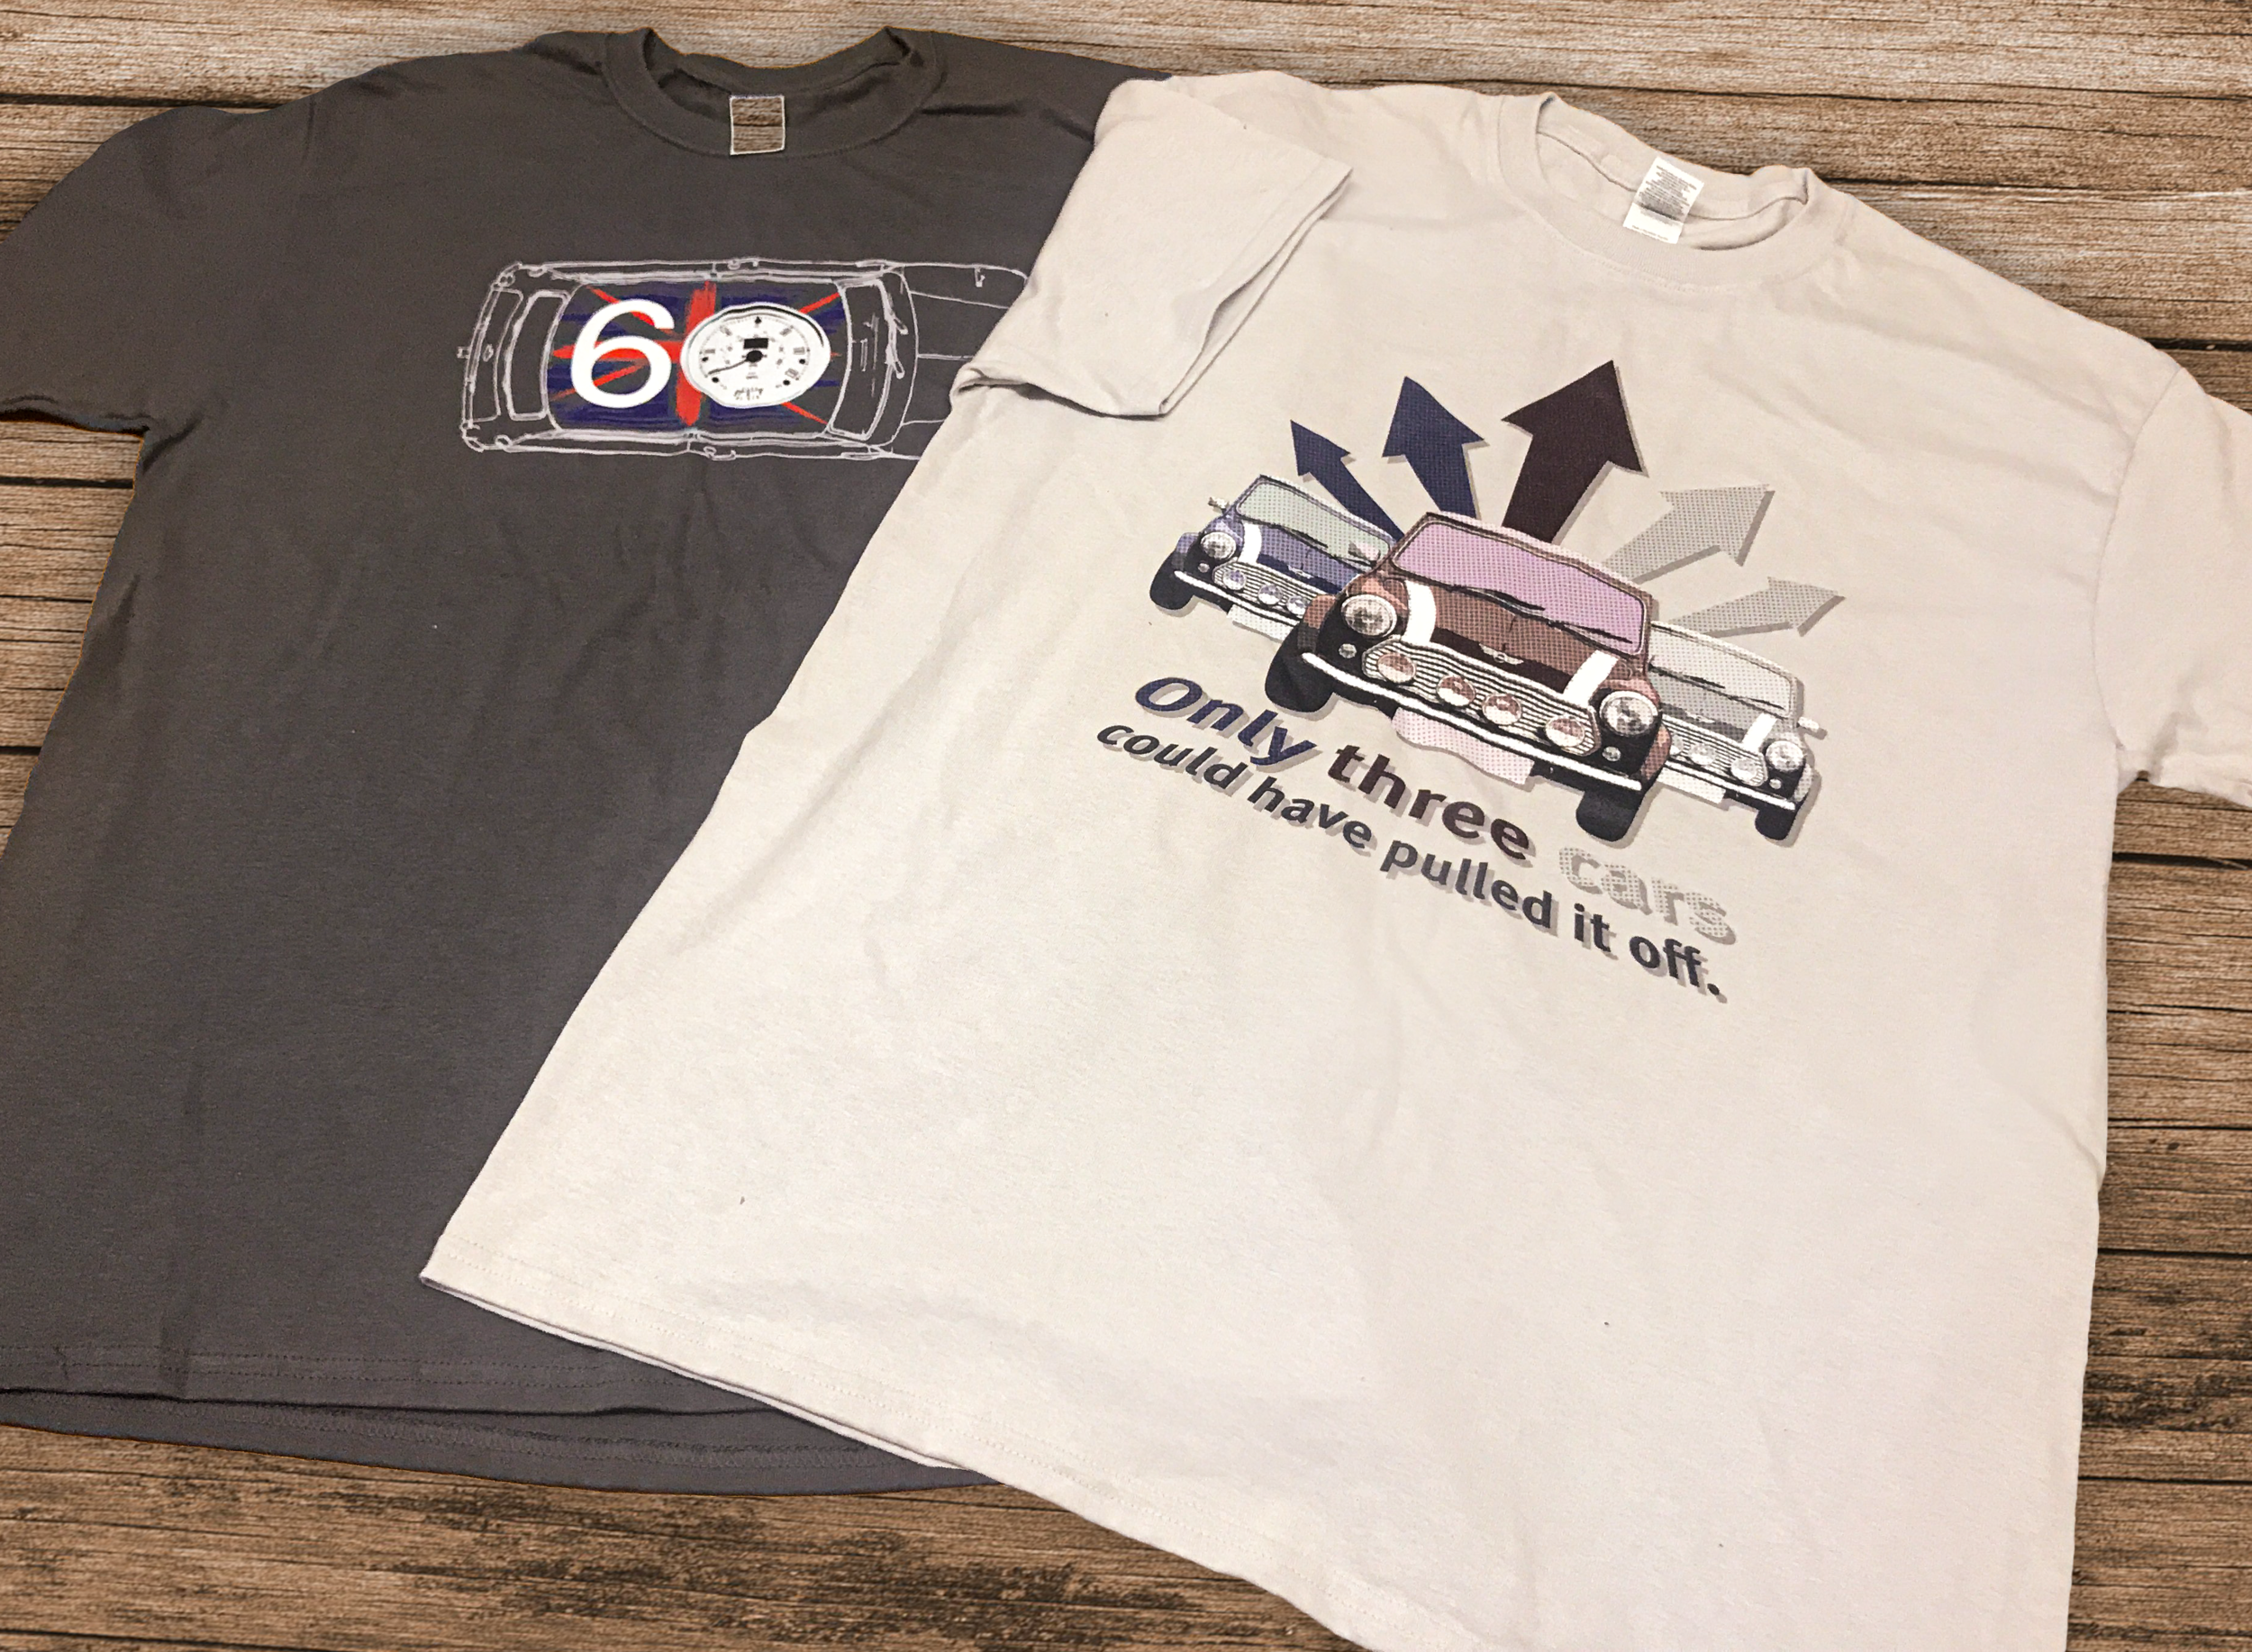 The Cotswold Motoring Museum Mini tshirts